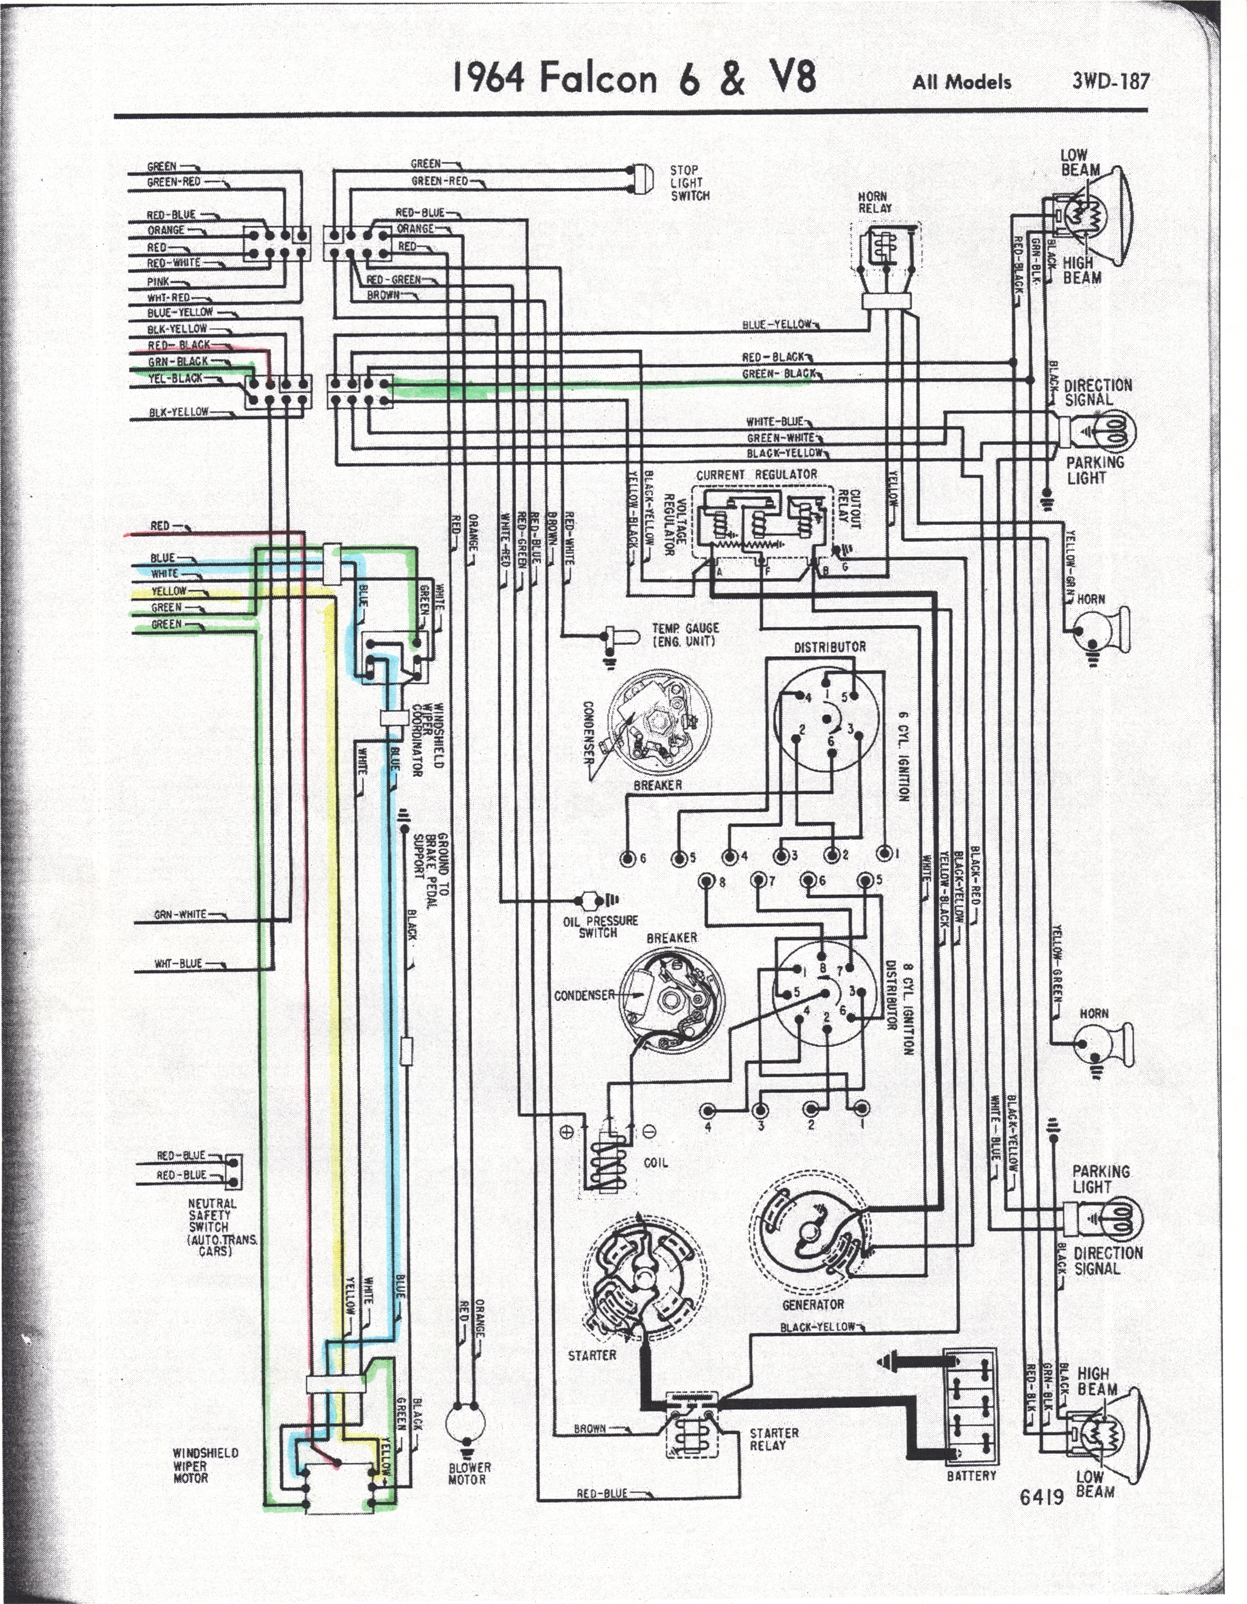 Falcon Diagrams Ford Rear Wiper Motor Wiring Diagram Here You Will Find Related To The